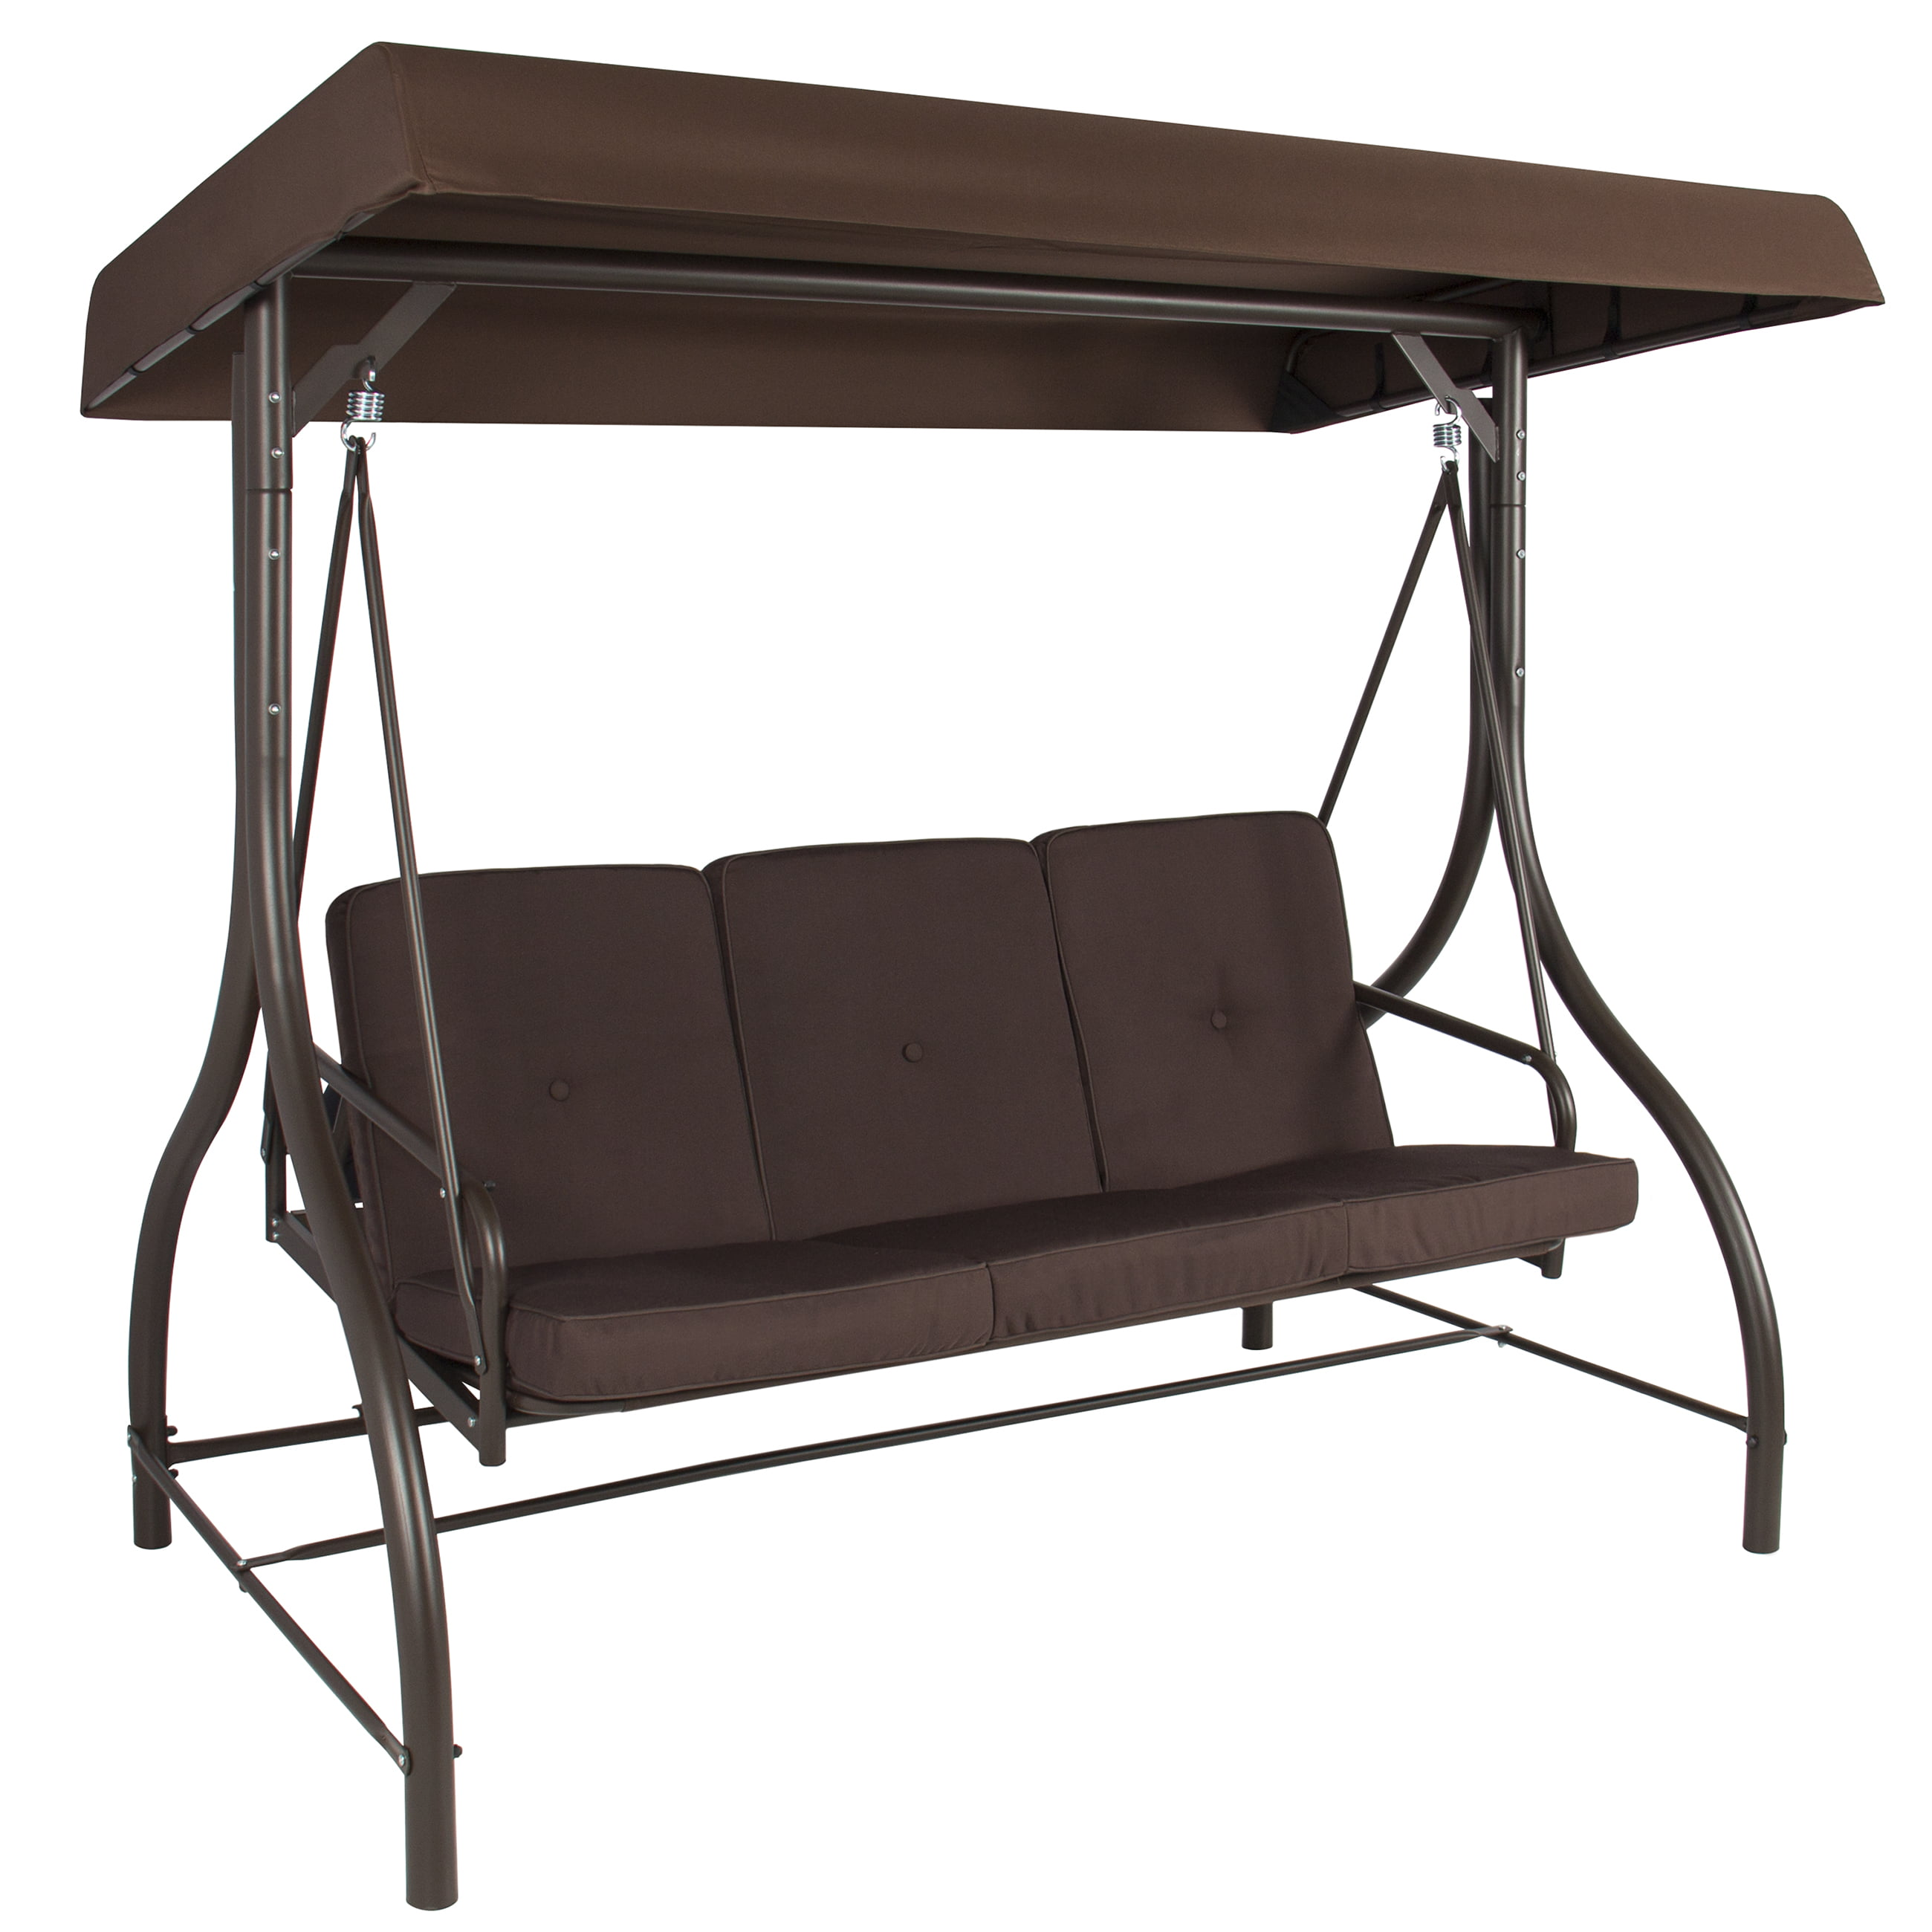 Genial Best Choice Products 3 Seat Converting Outdoor Furniture Patio Swing Canopy  Hammock   Brown   Walmart.com